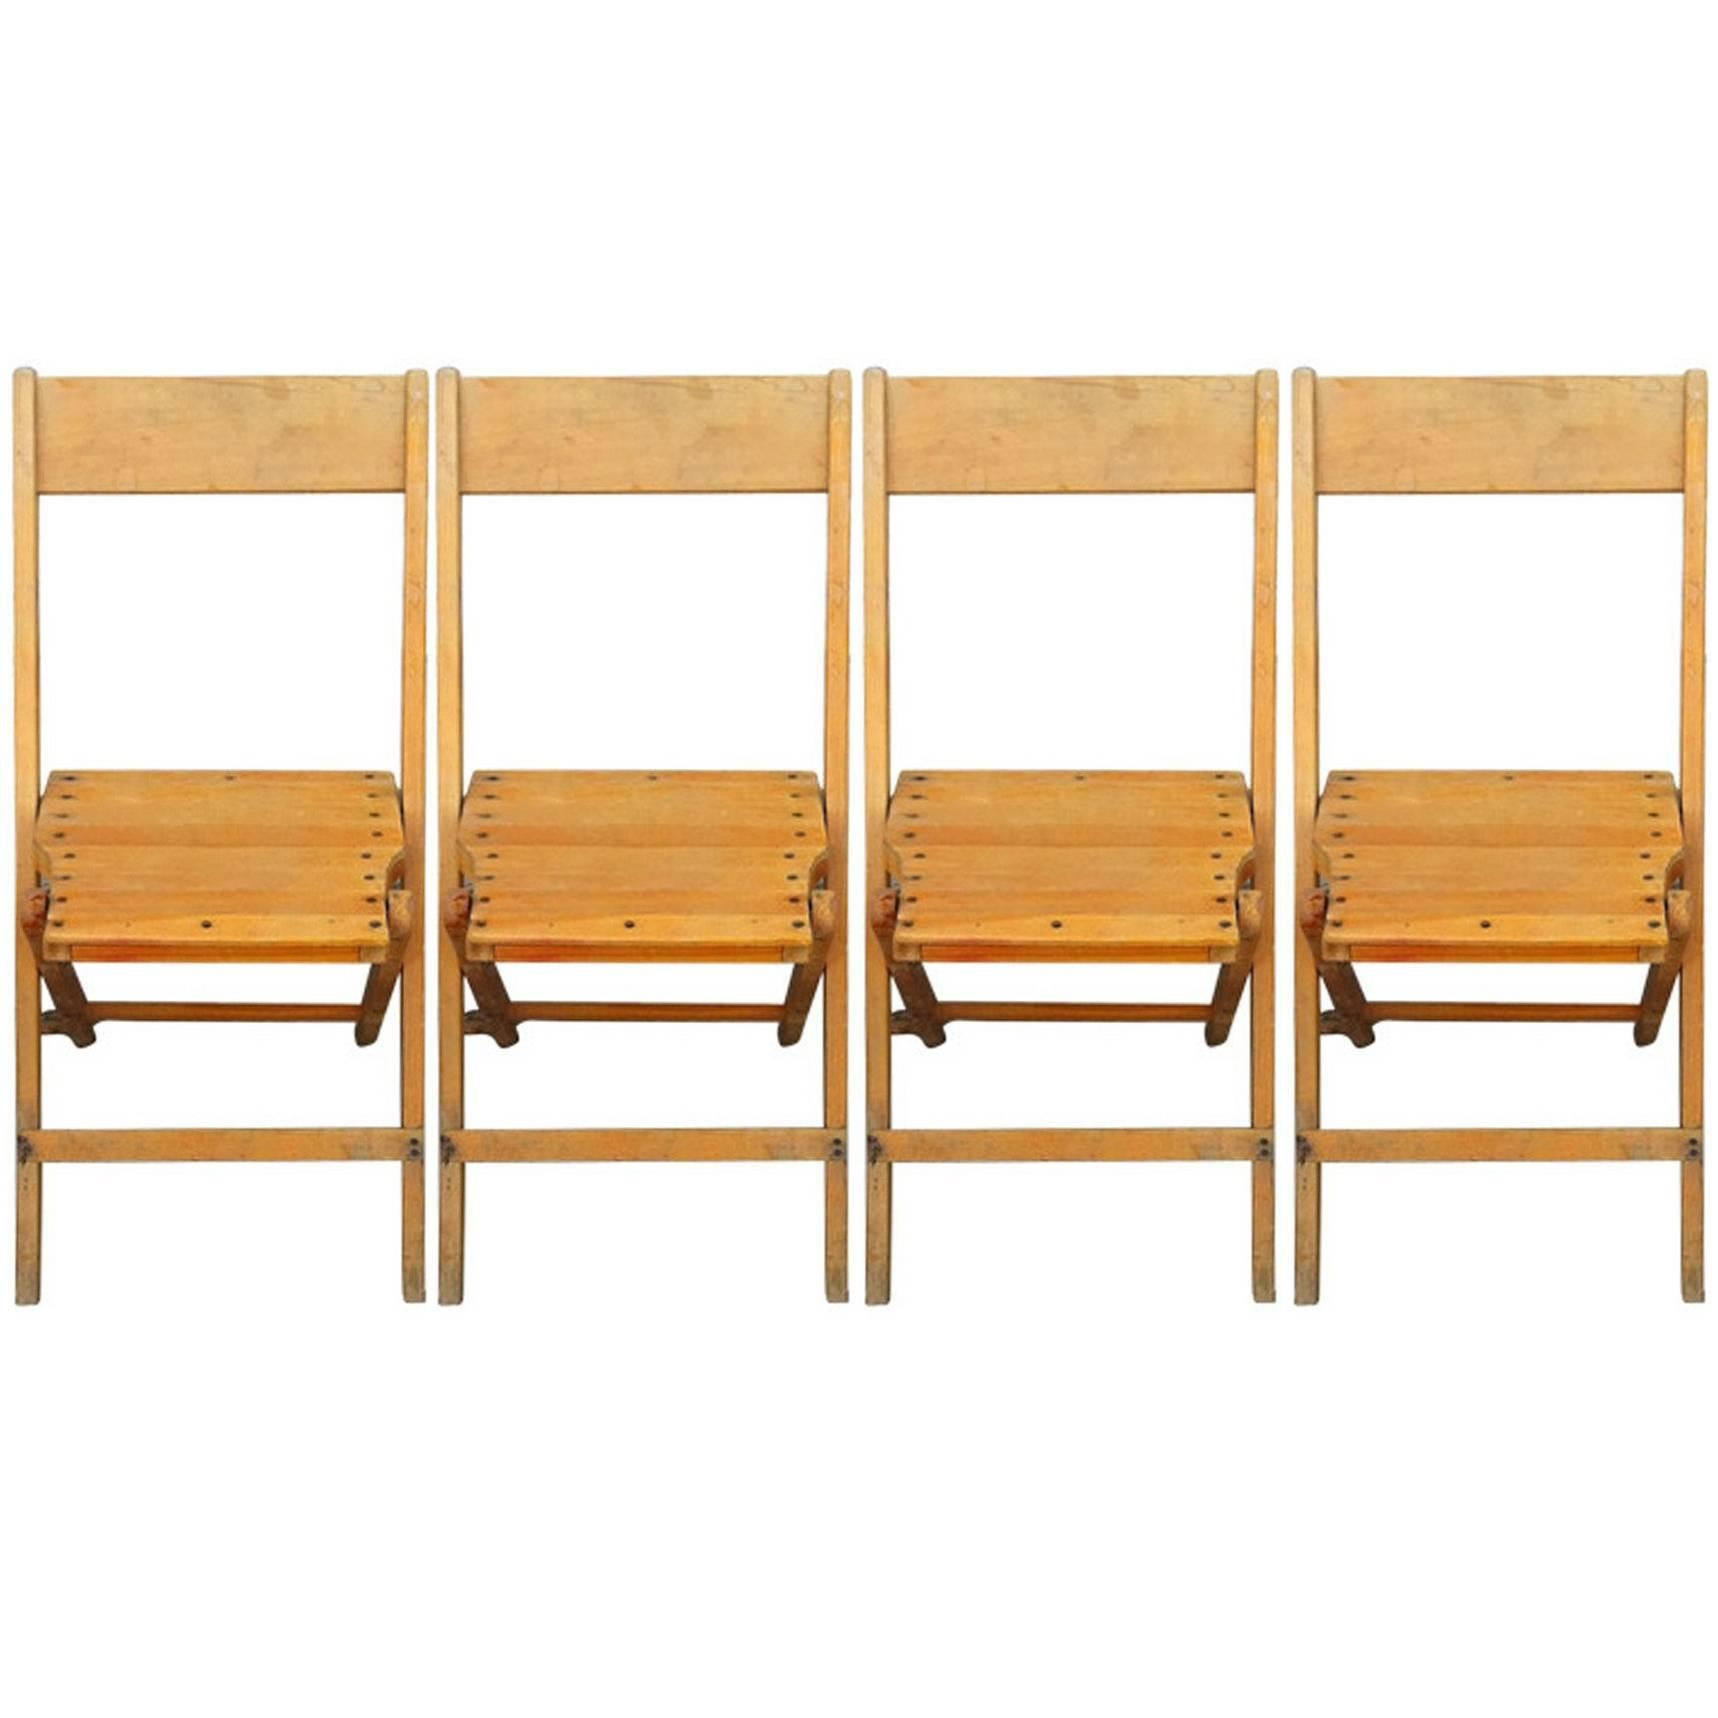 Set Of 4 Vintage Wood Folding Chairs; Many Available (total Of 470 Chairs  Avail